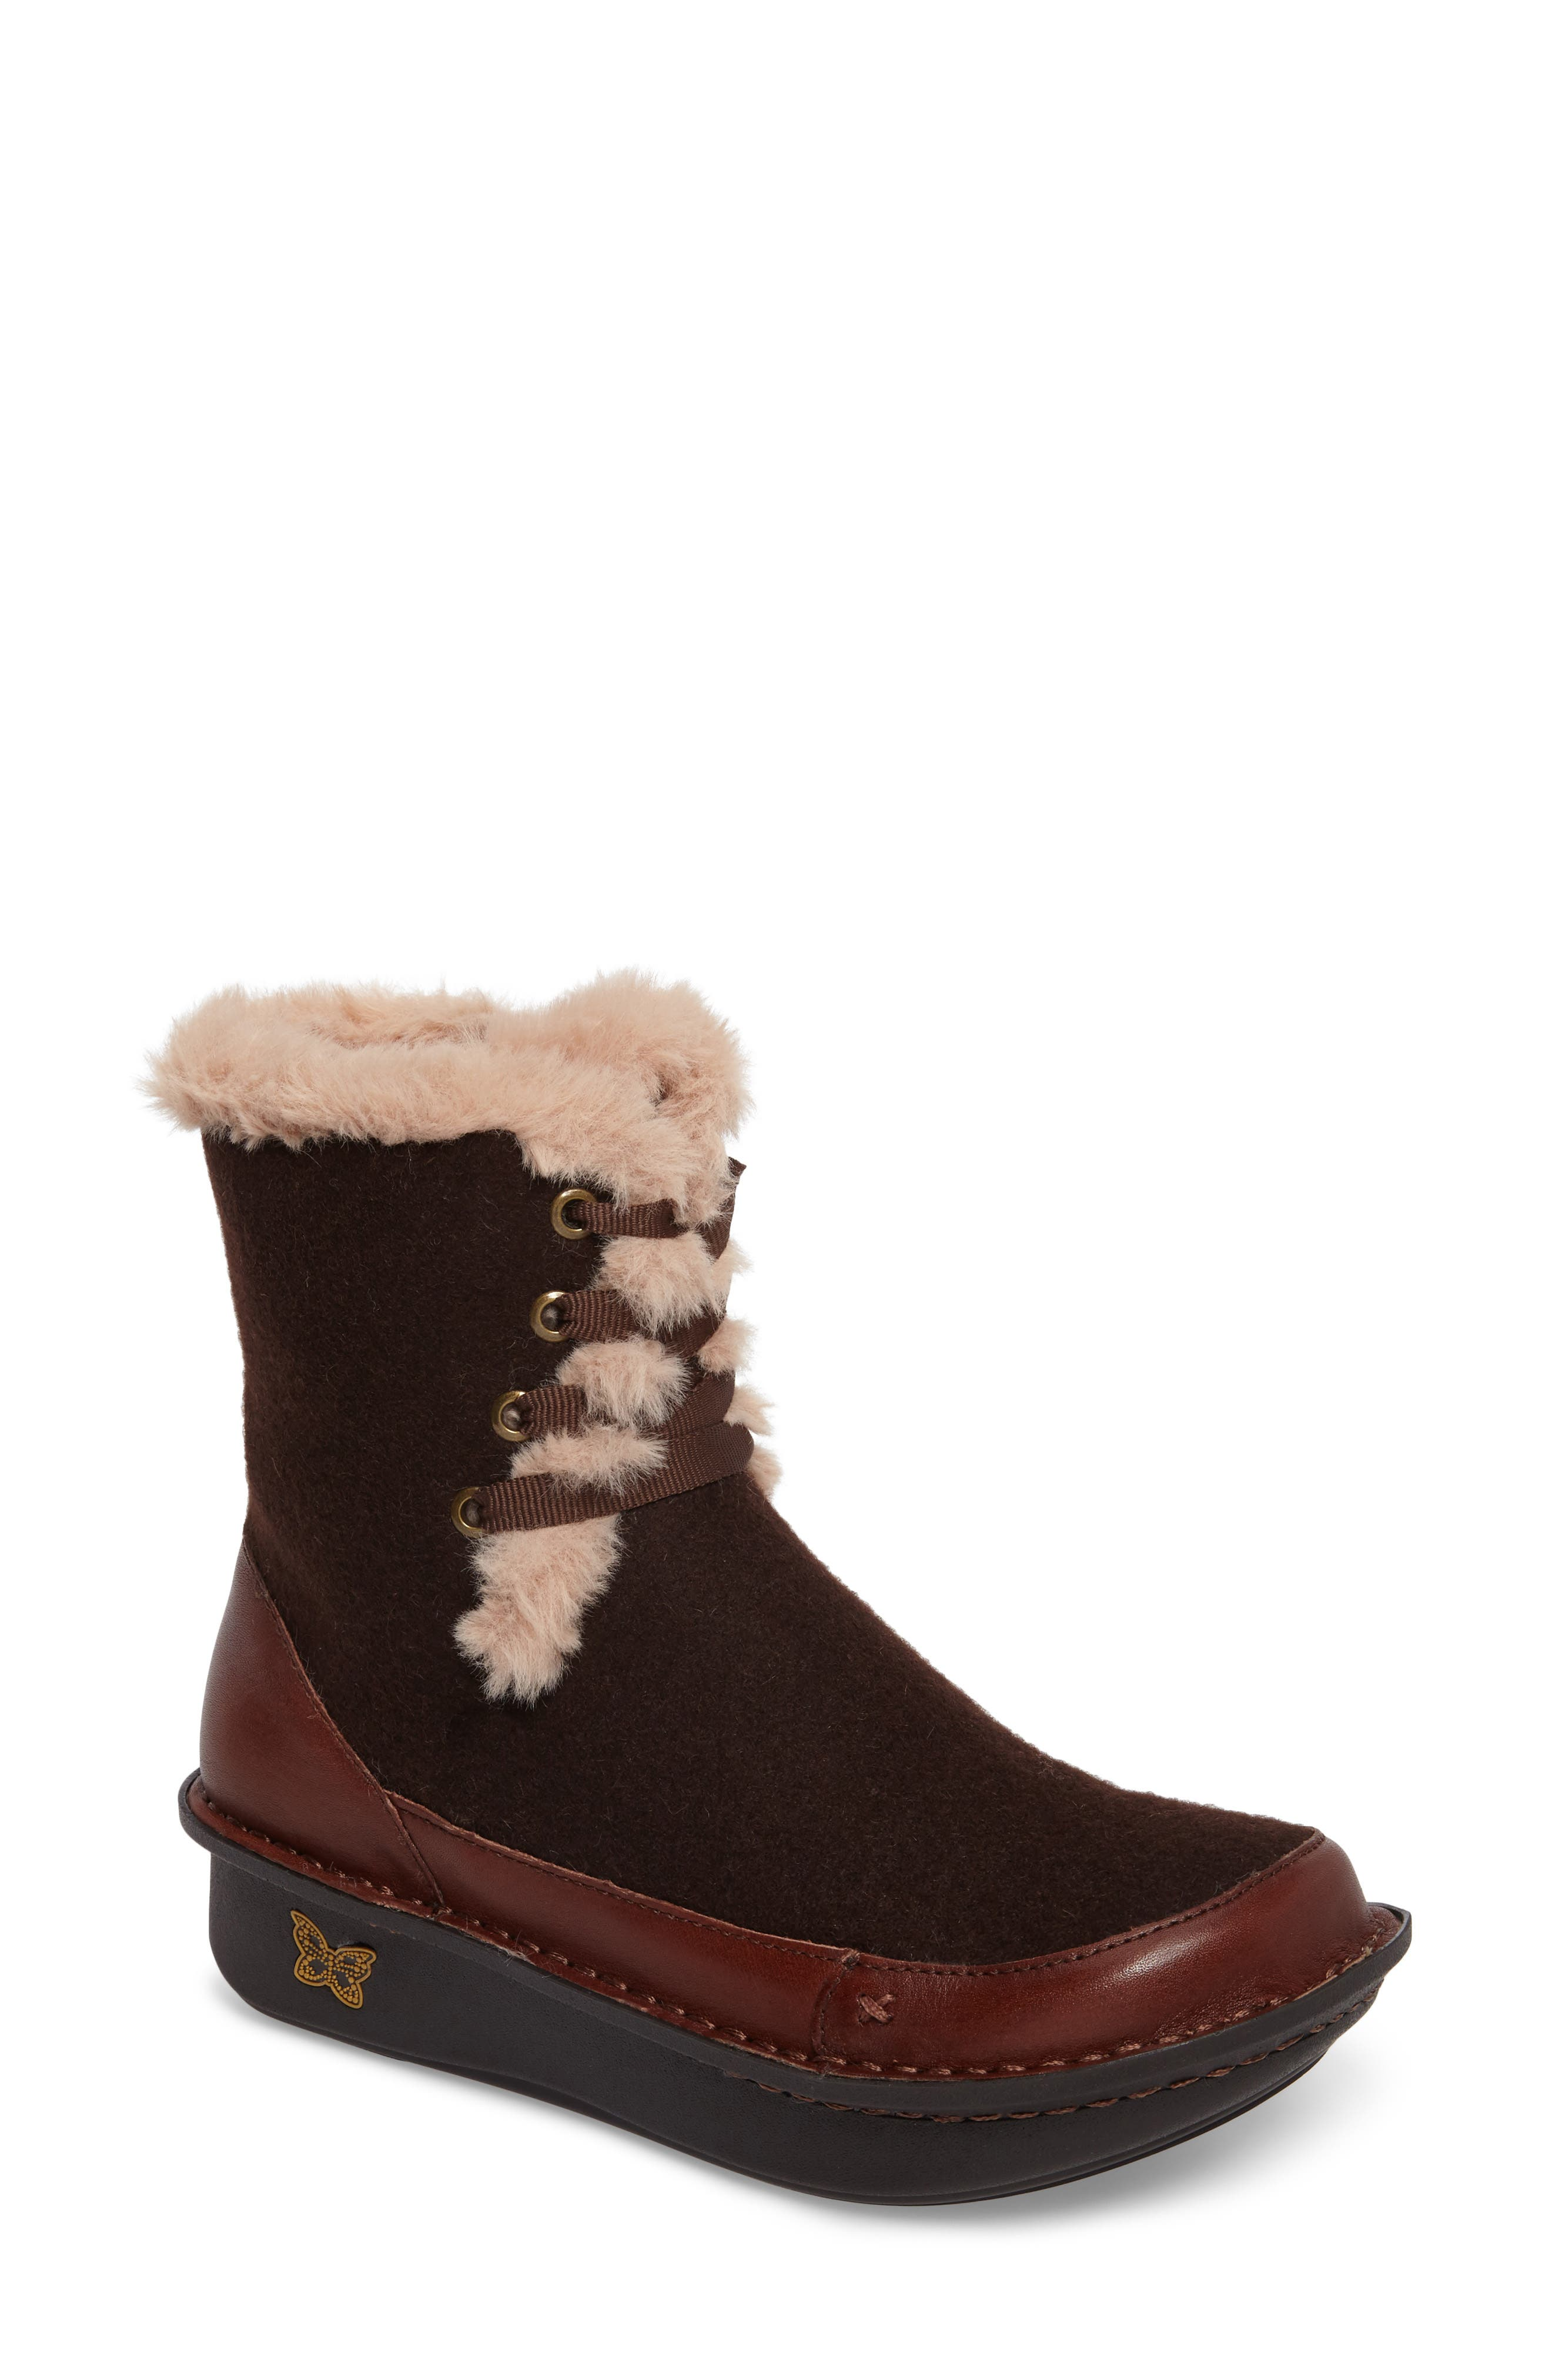 Twisp Lace-Up Boot with Faux Fur Lining,                         Main,                         color, Hazelnut Wool Leather